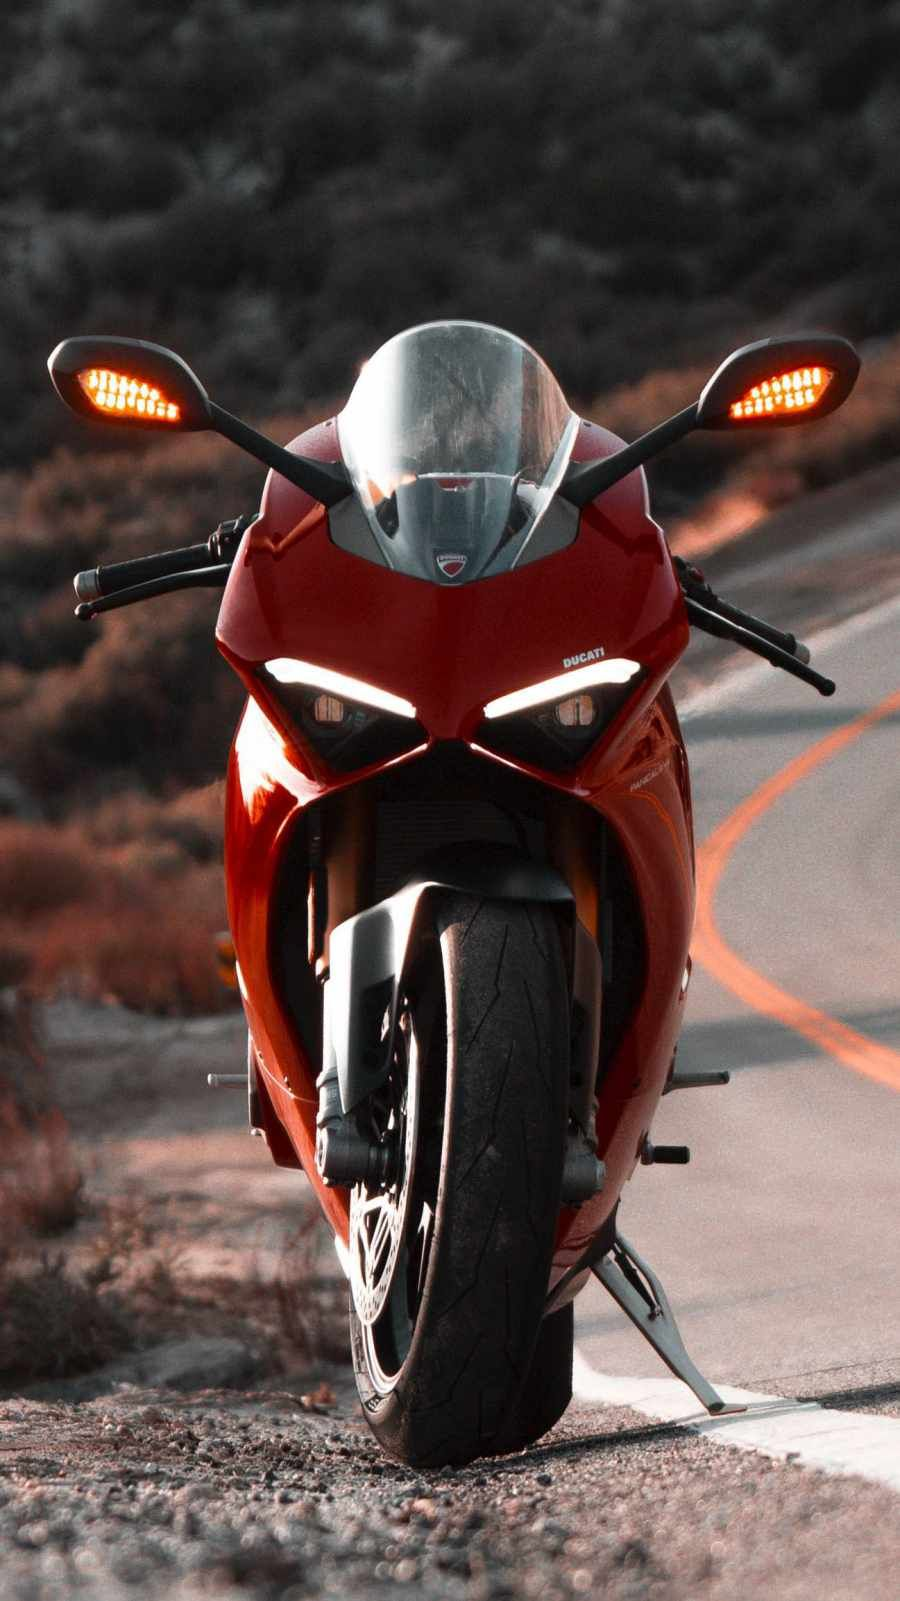 Ducati Panigale V4 - iPhone Wallpapers